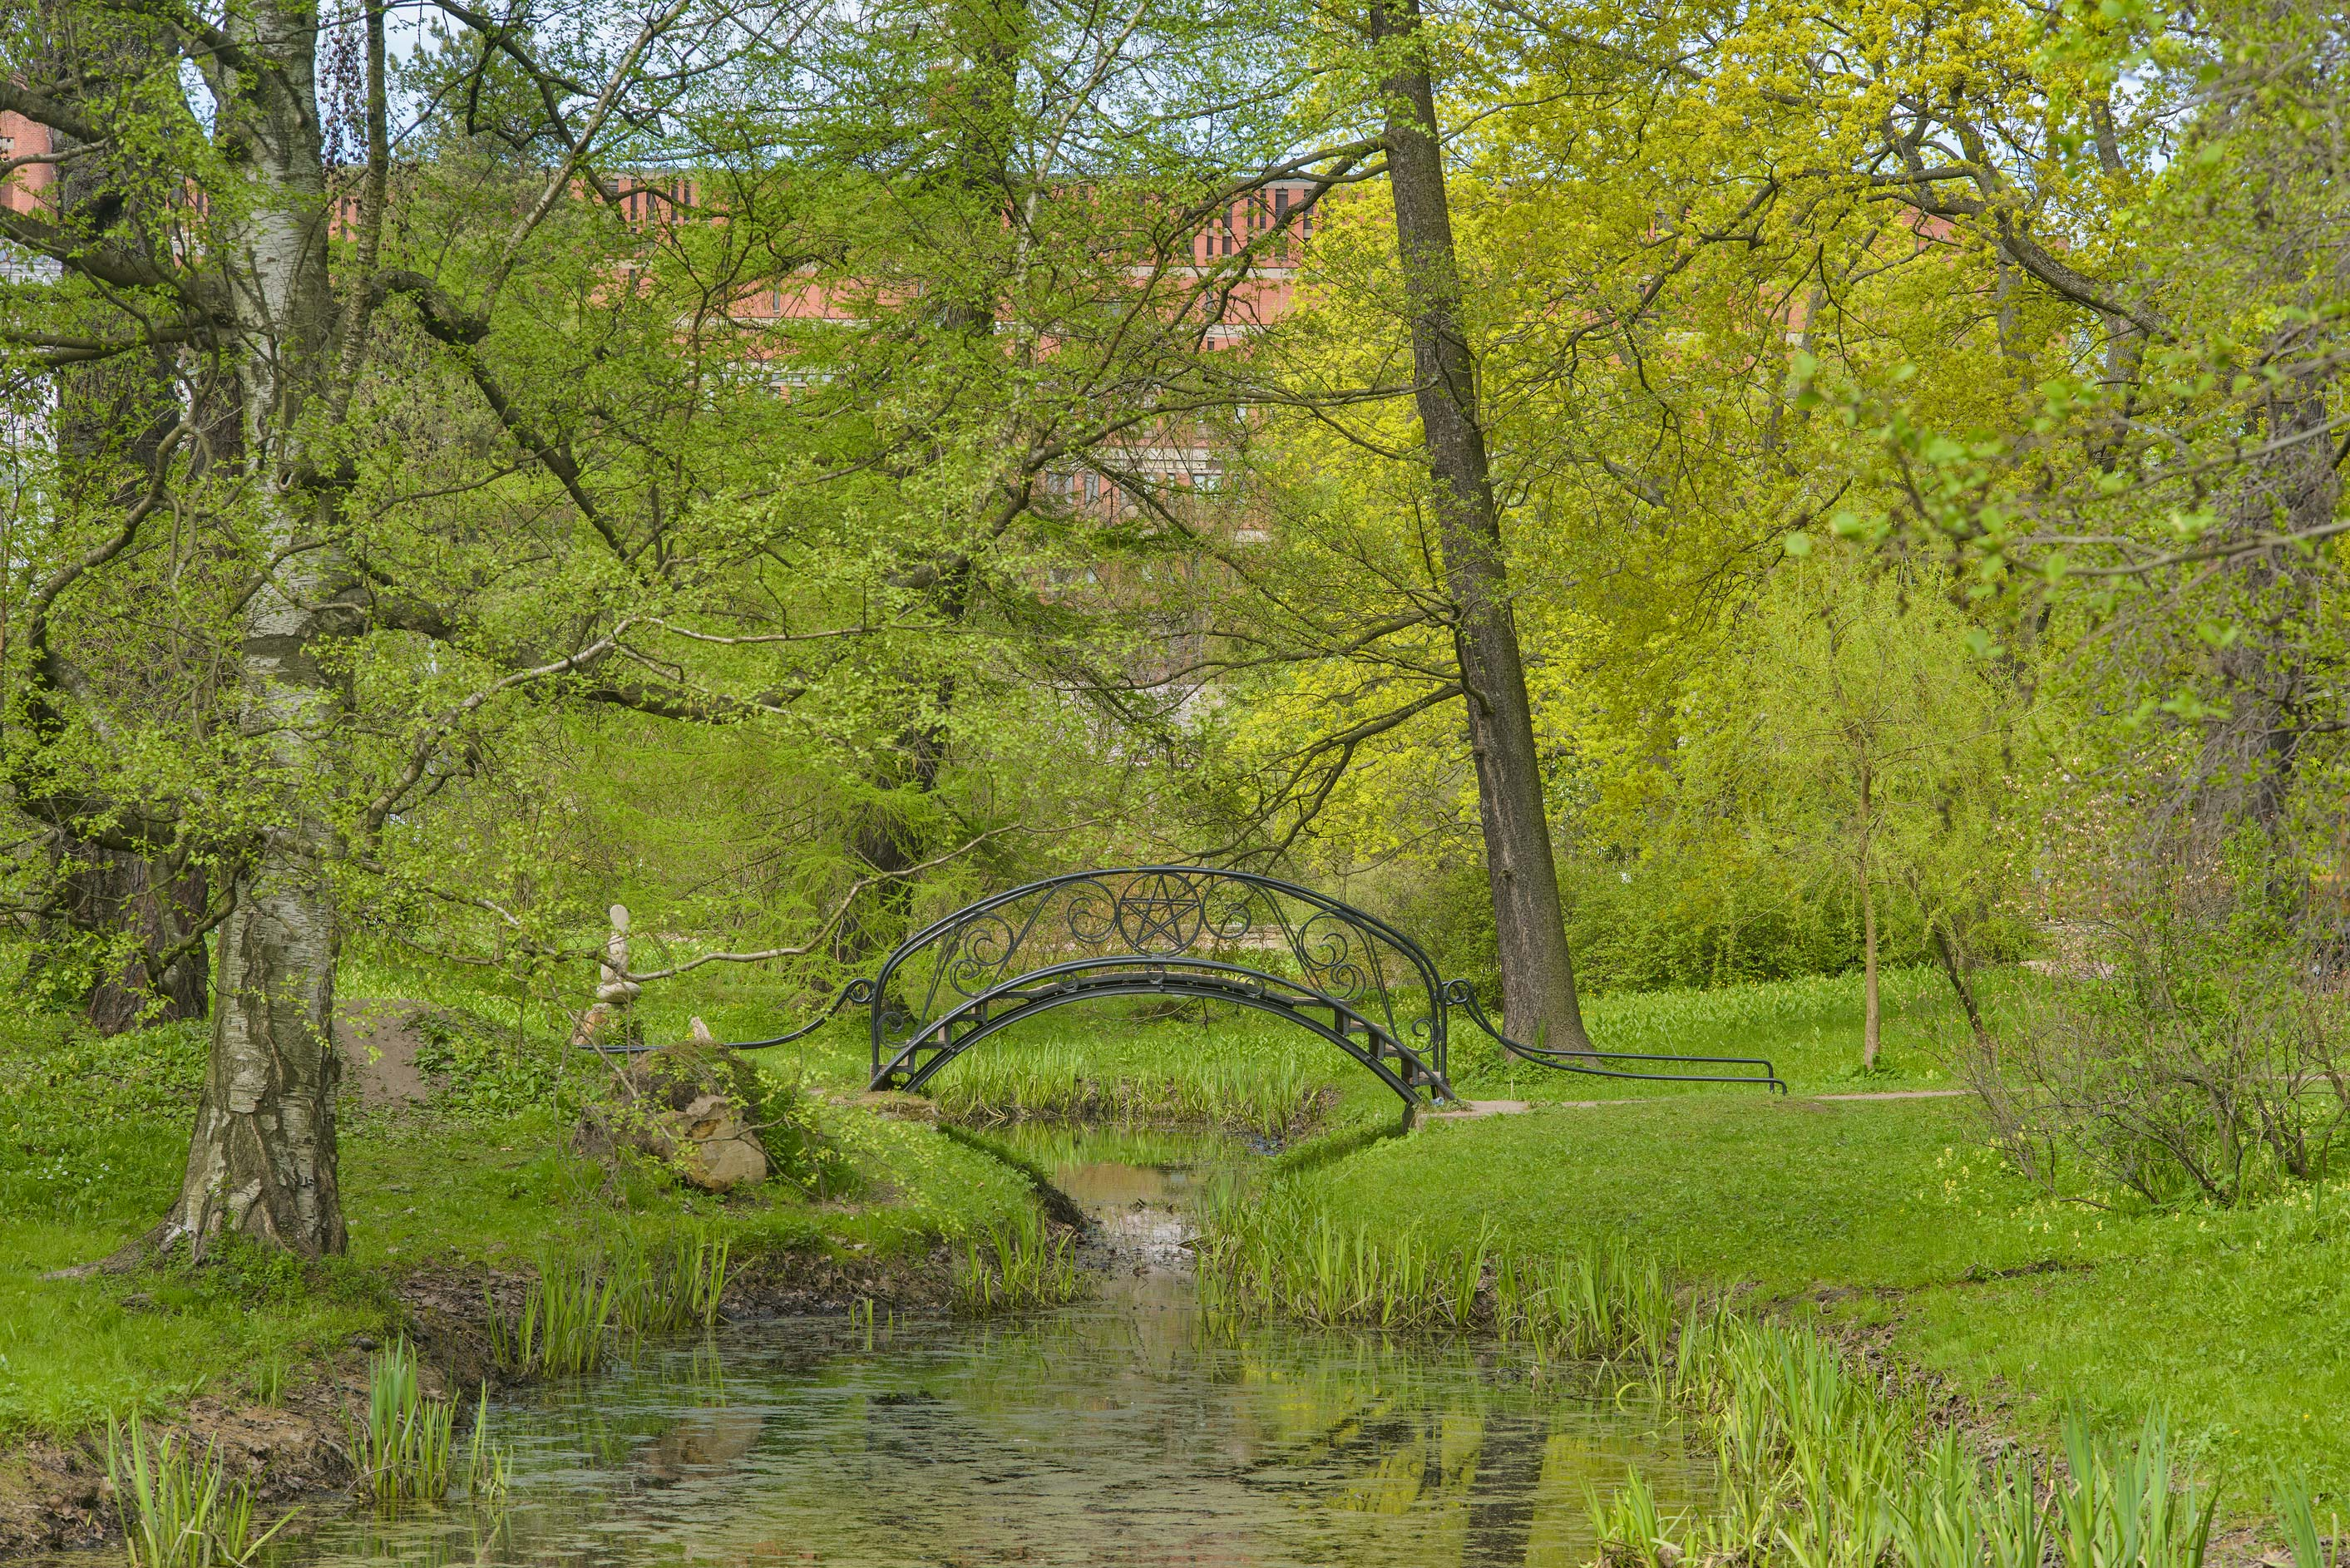 Iron foot bridge in Botanic Gardens of Komarov Botanical Institute. St.Petersburg, Russia